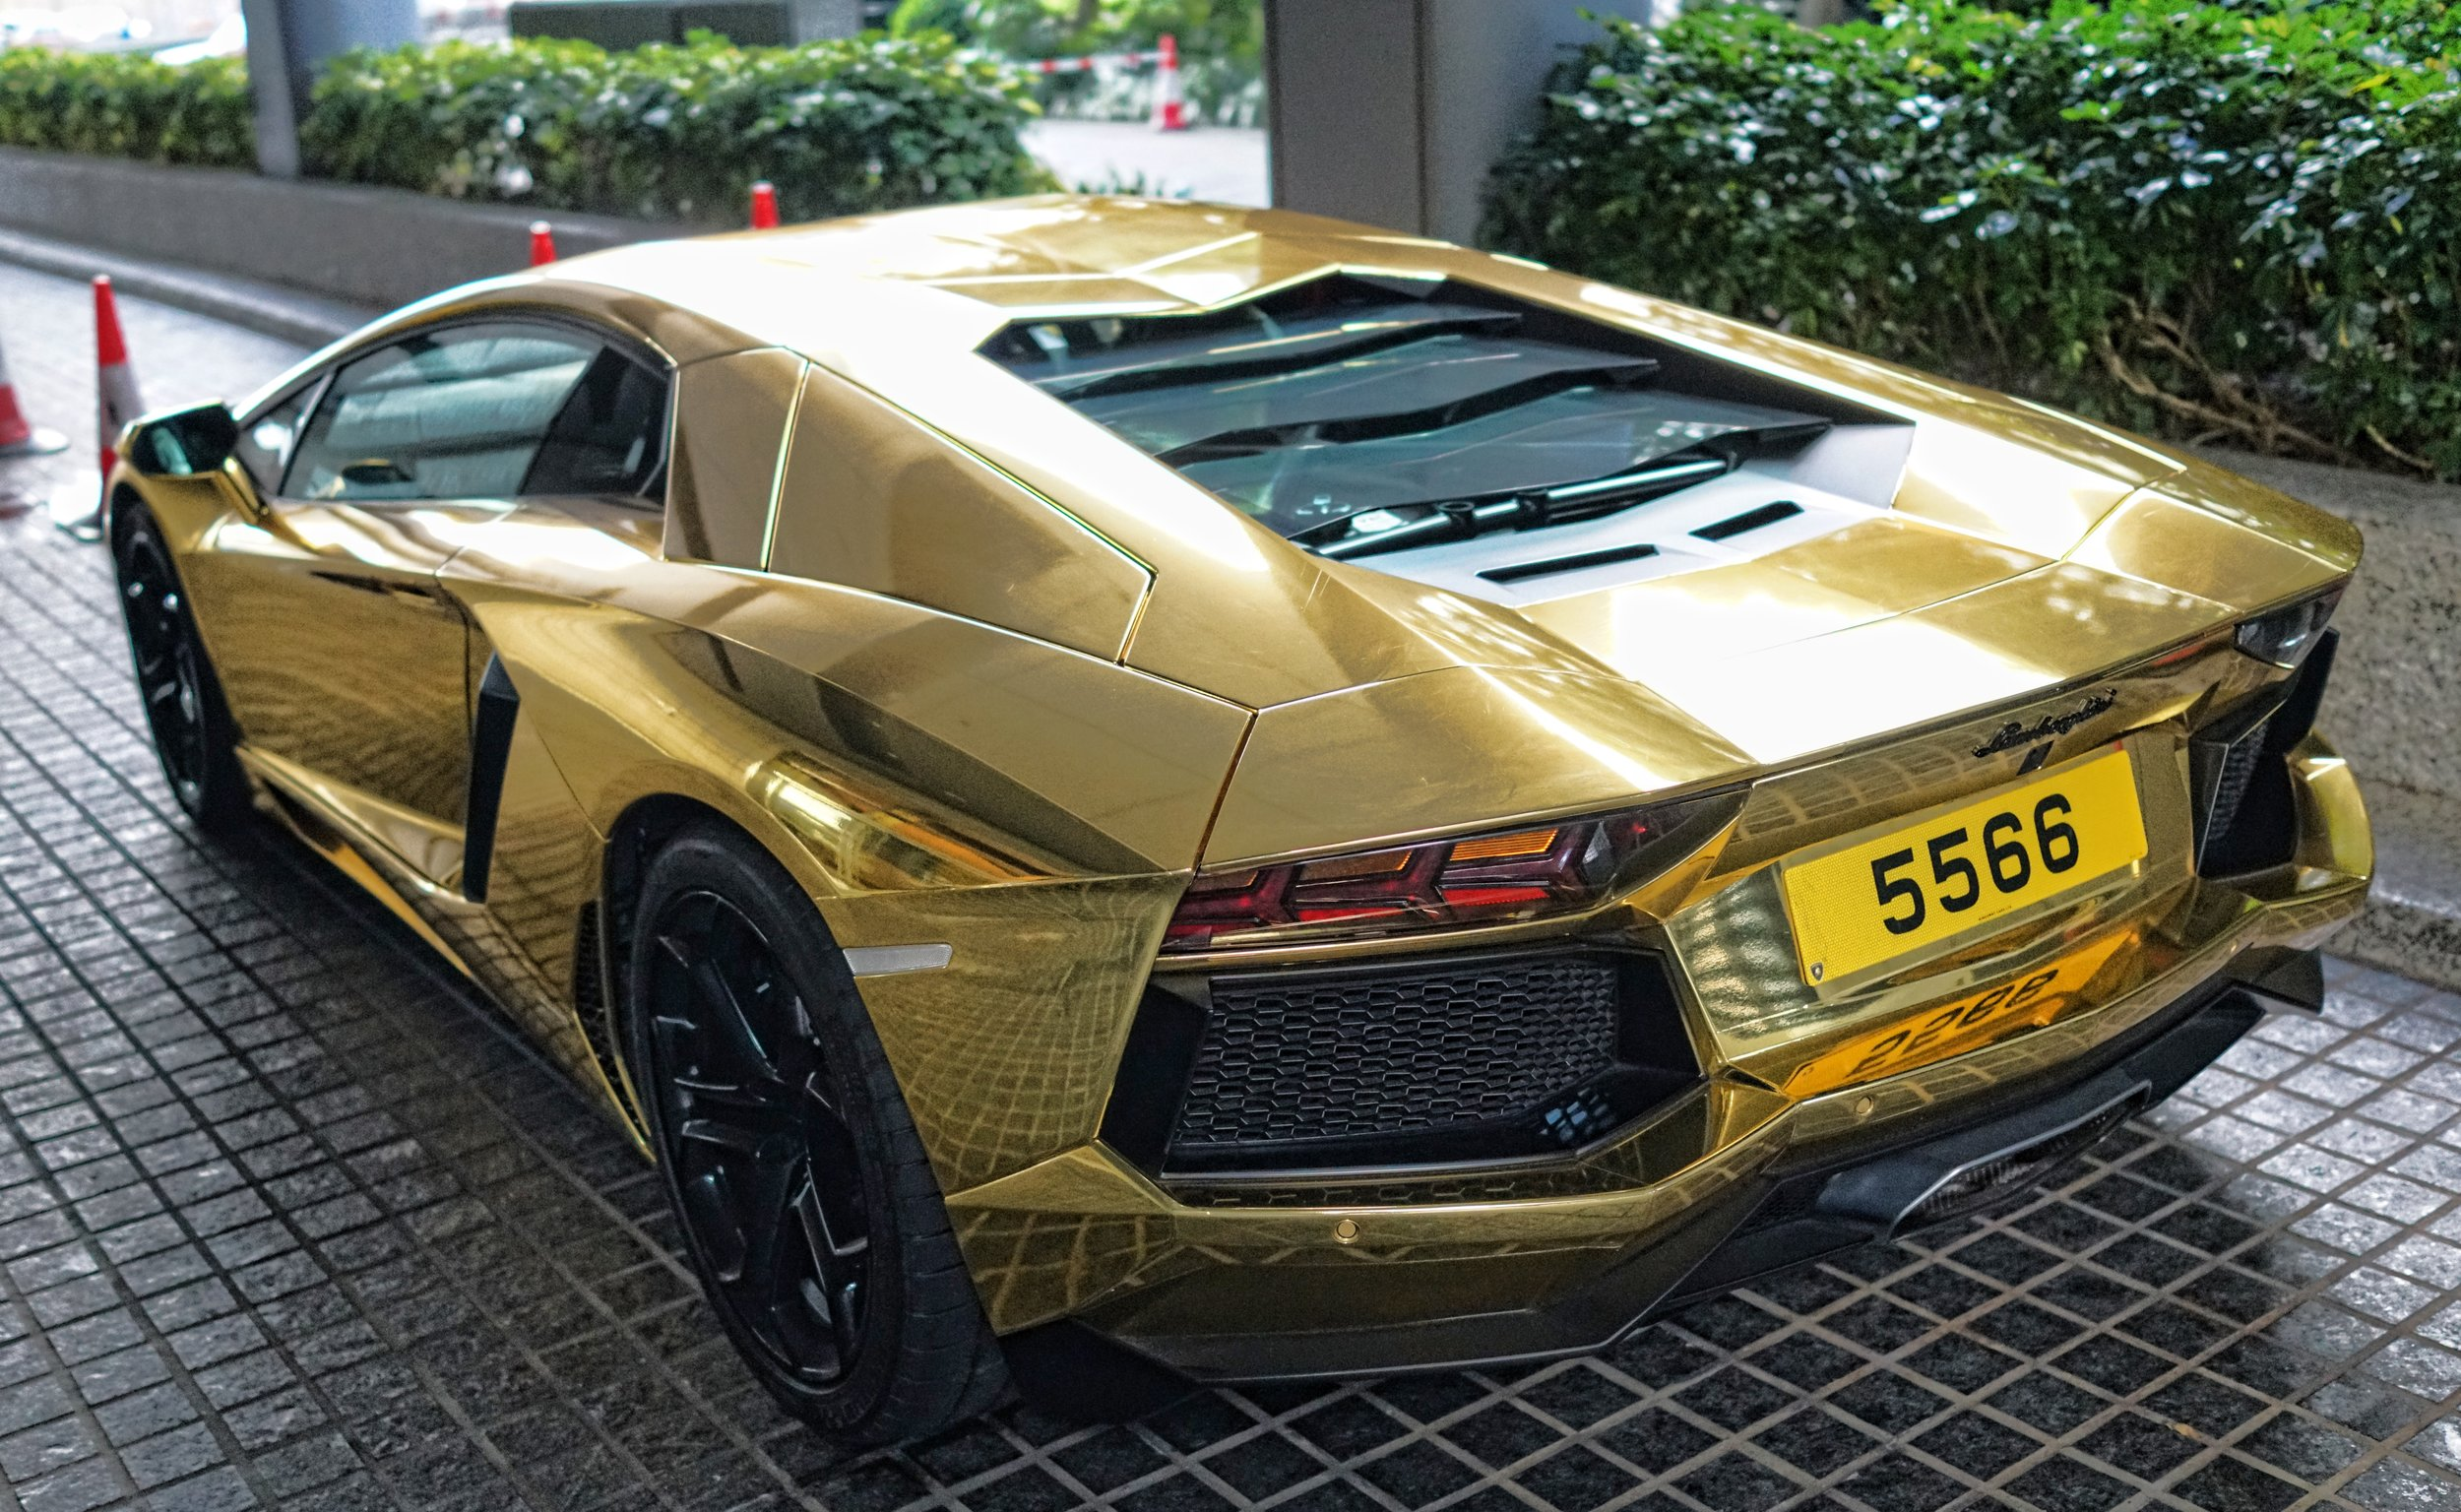 No less awesome is this quite famous (in Hong Kong) Lamborghini Aventador which causes some real Linda Blair 360o head turns, quite magnificent it is and it over the tops most over the top cars in Hong Kong.